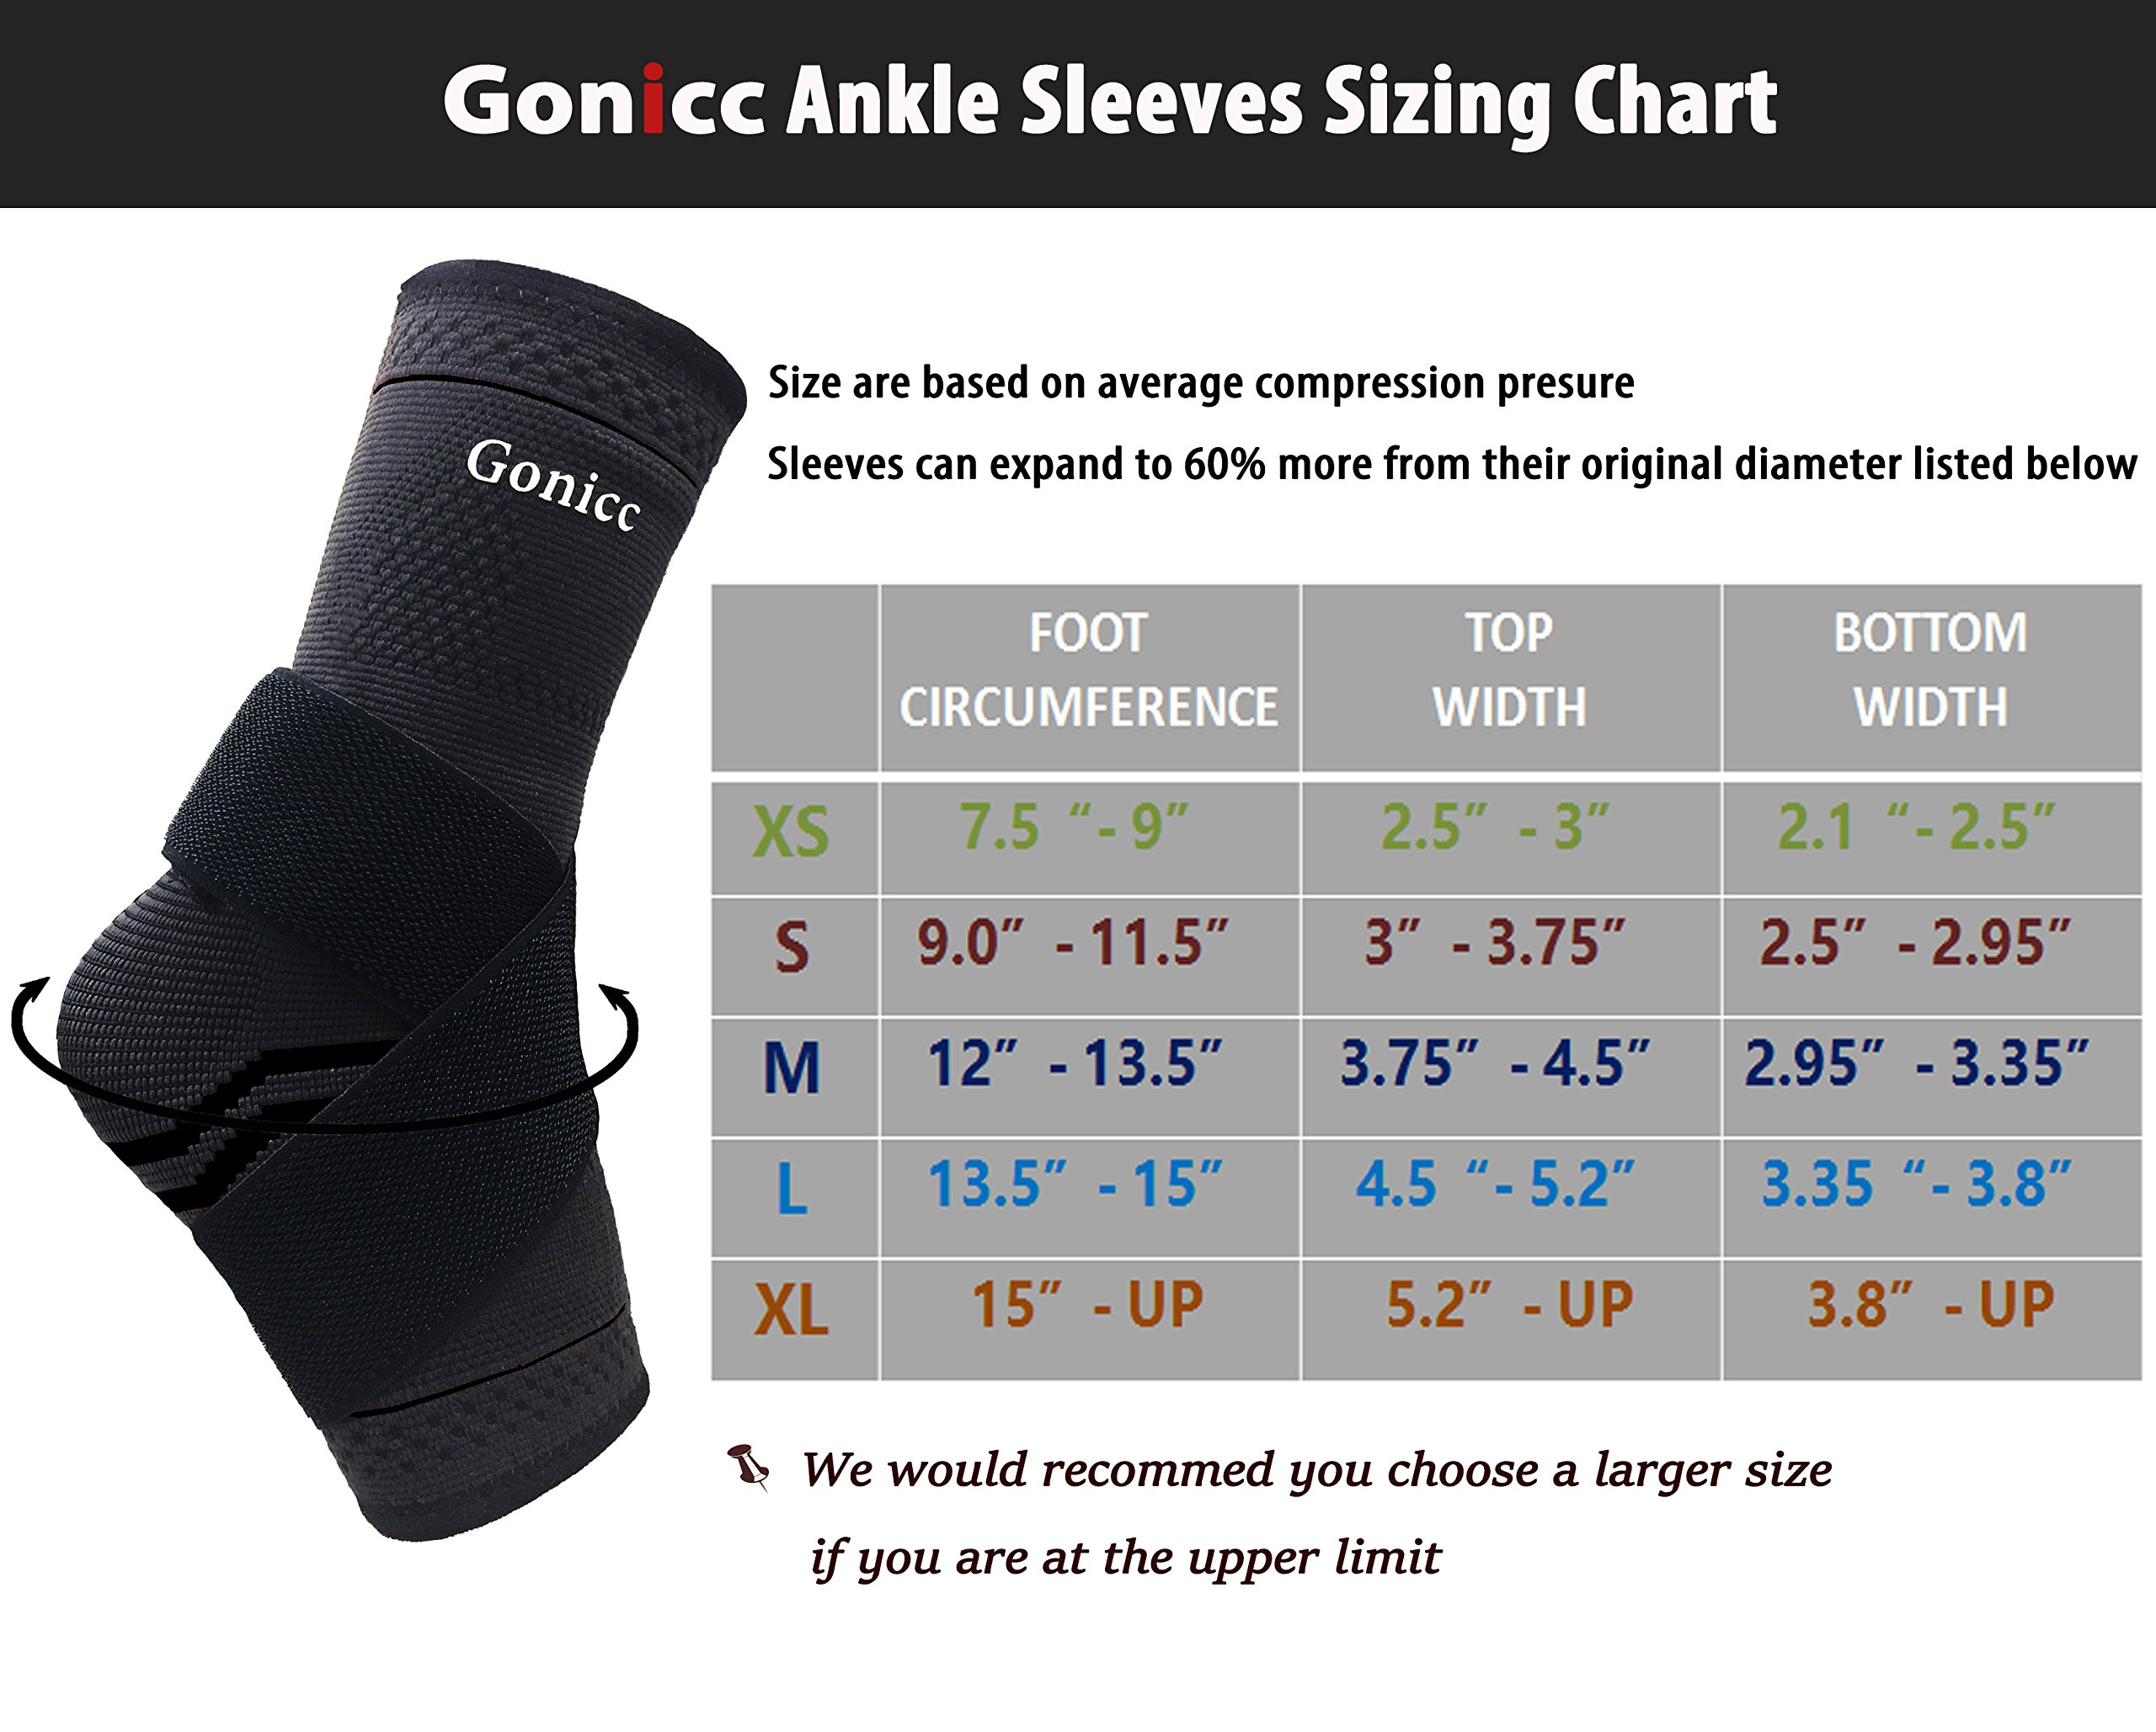 gonicc Professional Foot Sleeve Pair(2 Pcs) with Compression Wrap Support(Large, Black), Breathable, Stabiling Ligaments, Prevent Re-Injury, Boots Circulation, Soothe Achy Feet, Ankle Brace by gonicc (Image #5)